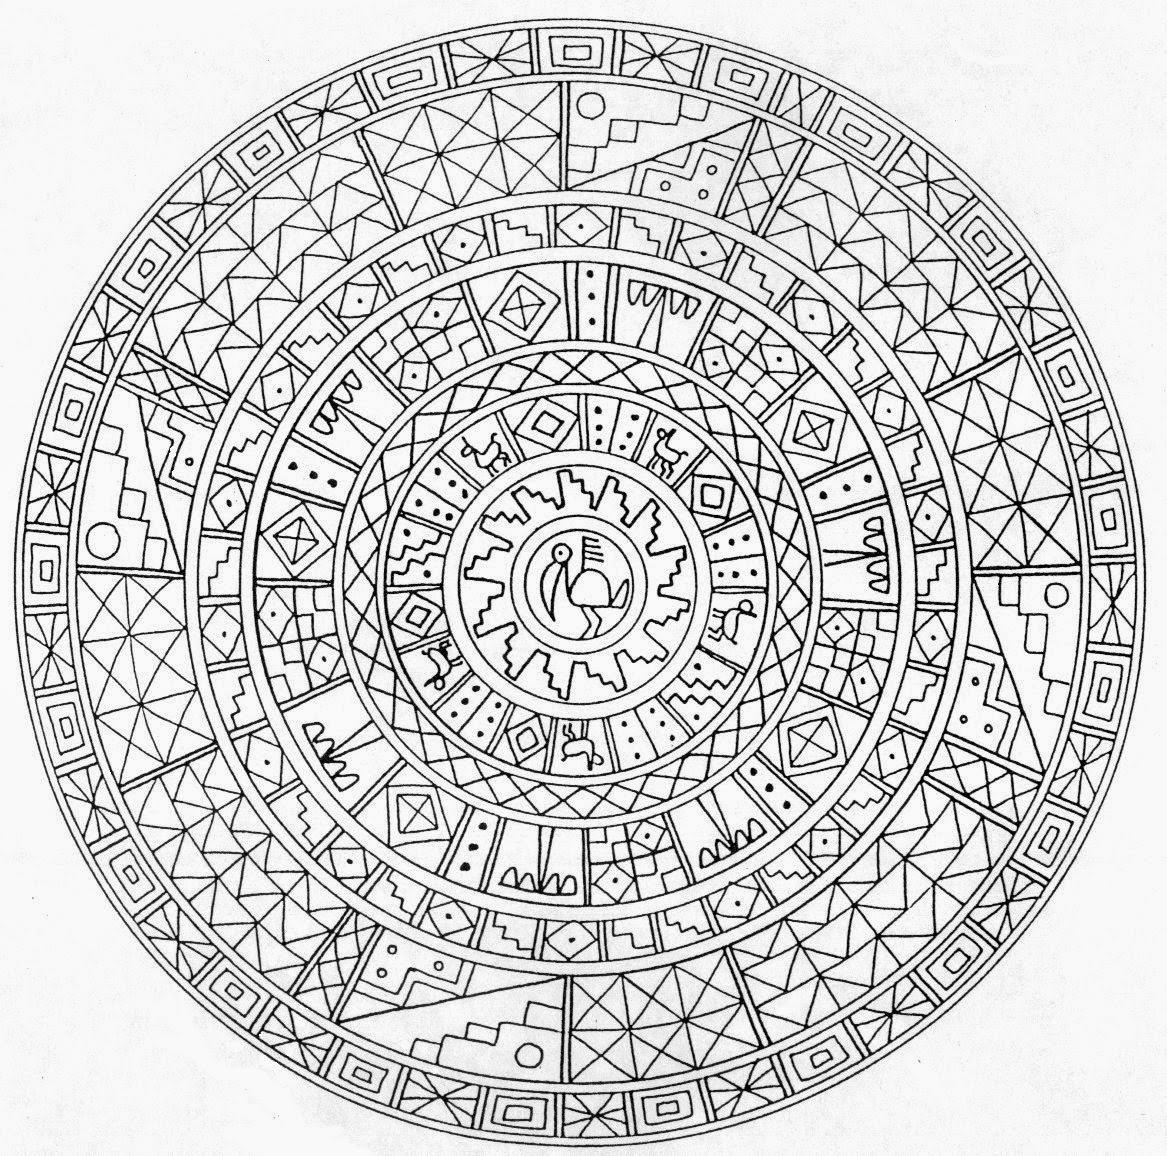 mandalas to color for adults mandala to download in pdf 1 malas adult coloring pages mandalas color to adults for